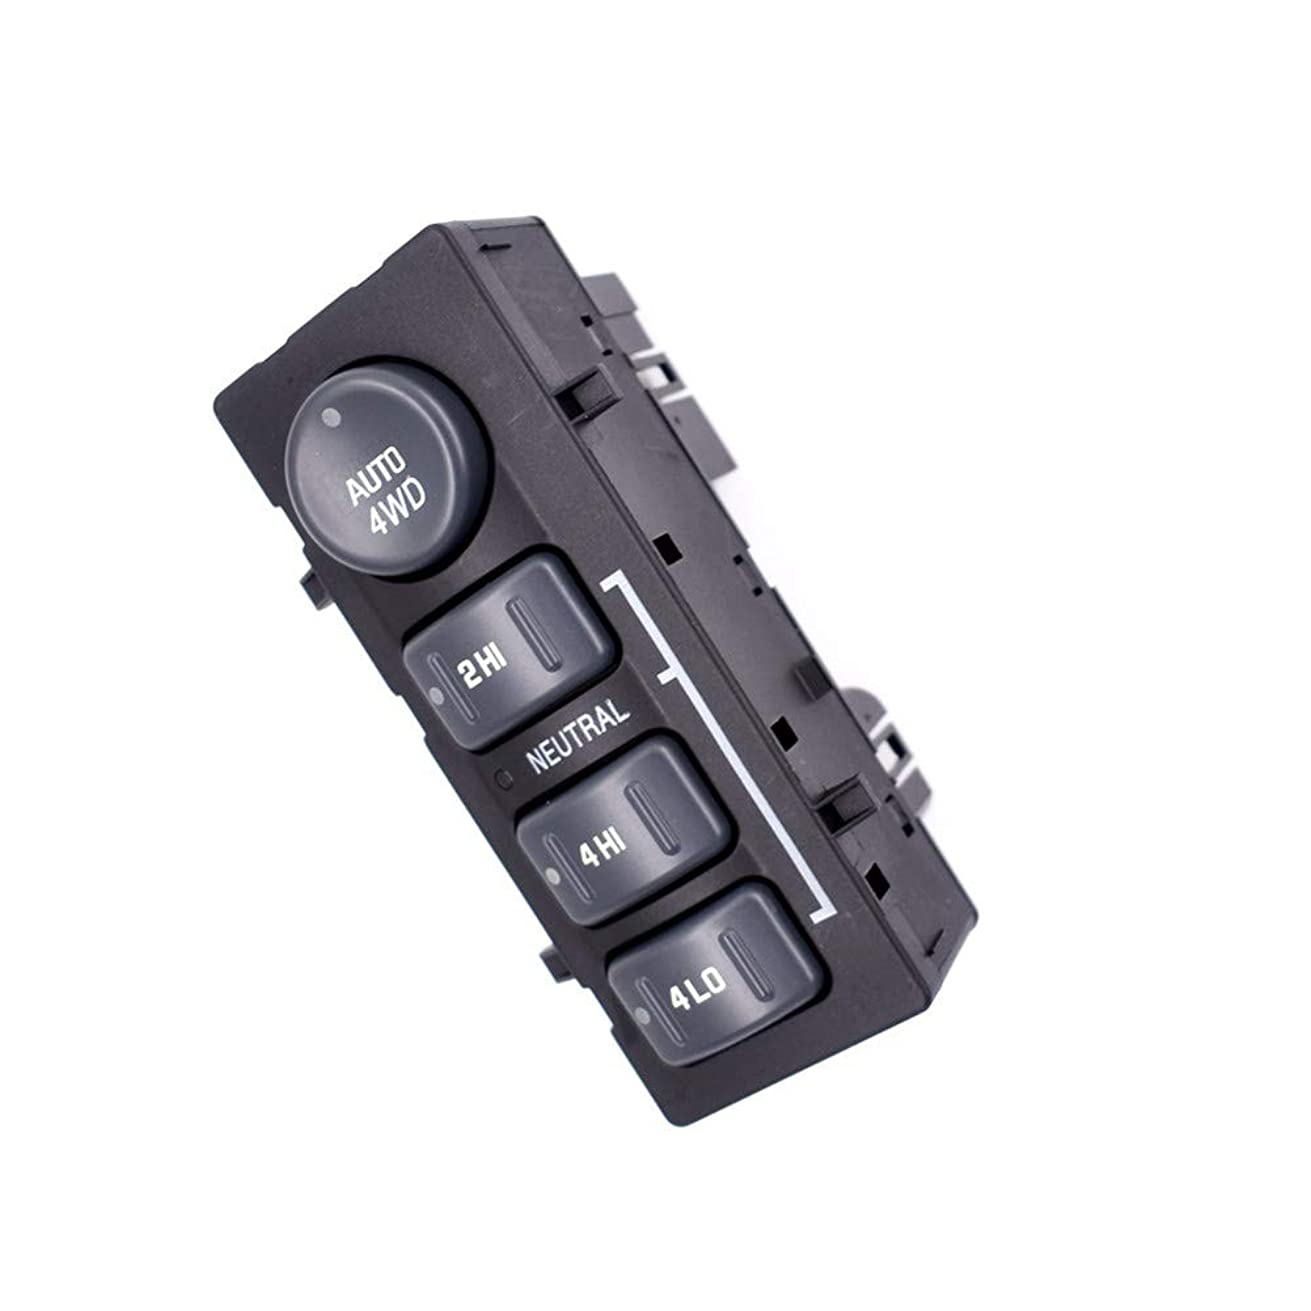 labwork-parts 4WD 4x4 Transfer Case Selector Dash Switch for Chevrolet Tahoe Suburban 19259313